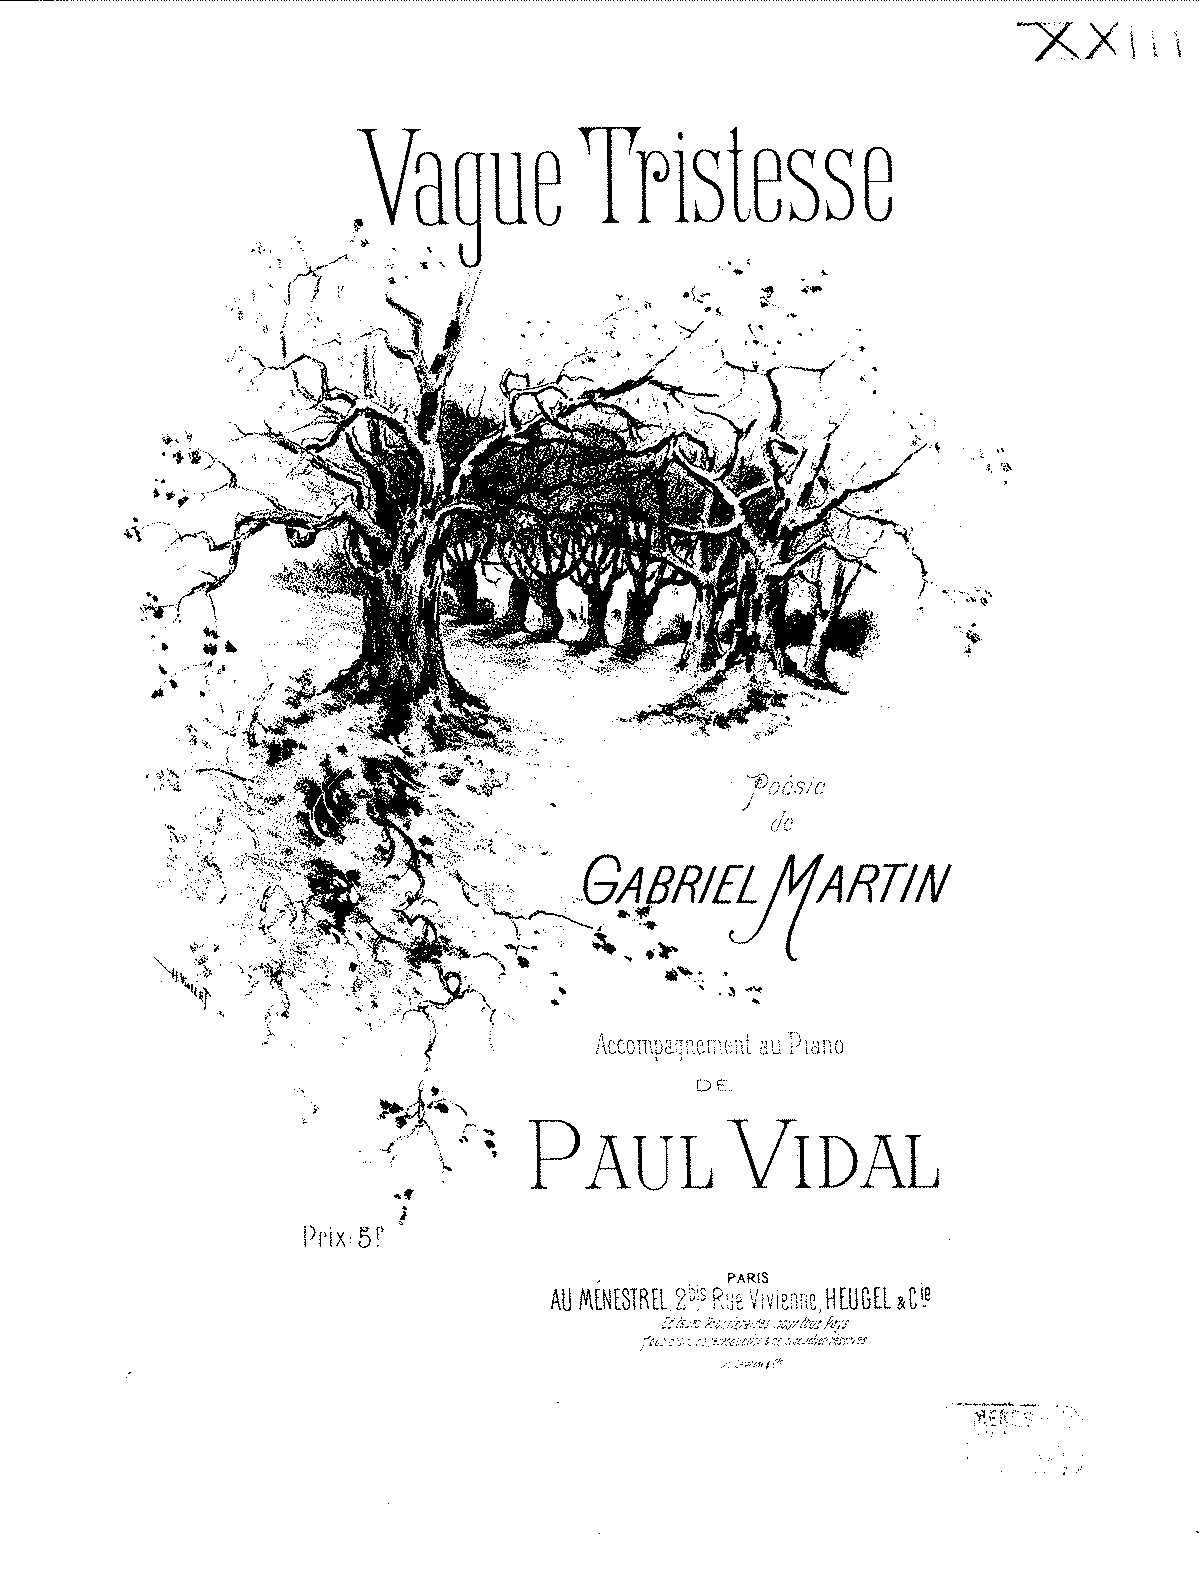 PMLP162474-Vidal - Vague tristesse.pdf